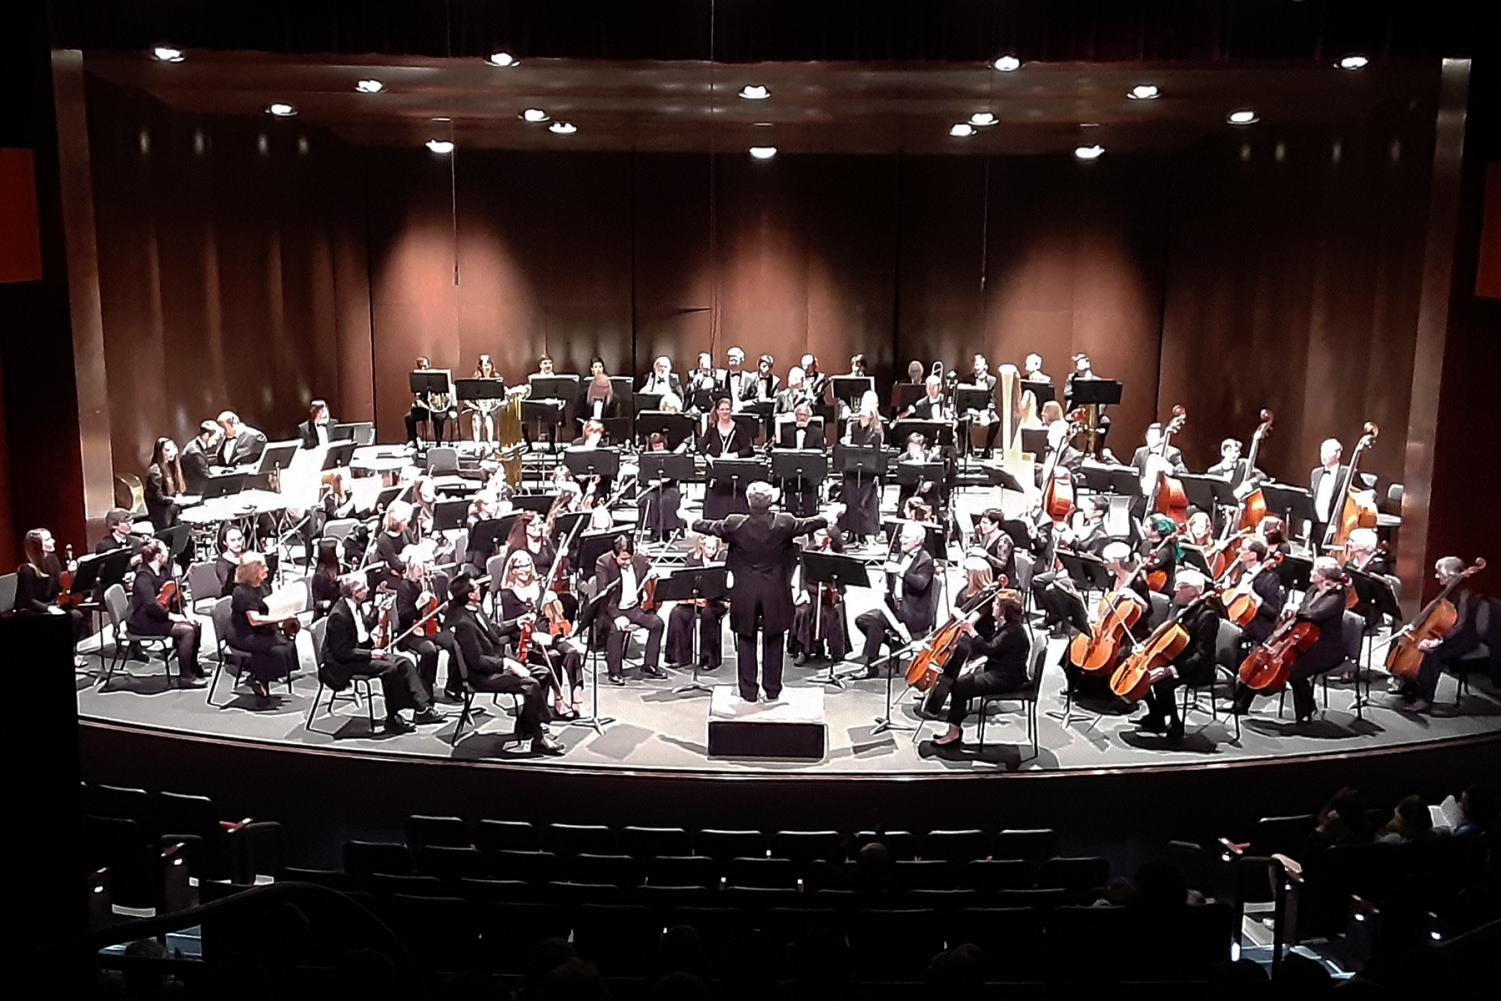 The SBCC Symphony Orchestra takes the stage on Sunday, Nov. 24, 2019 in the Garvin Theatre at City College in Santa Barbara, Calif.